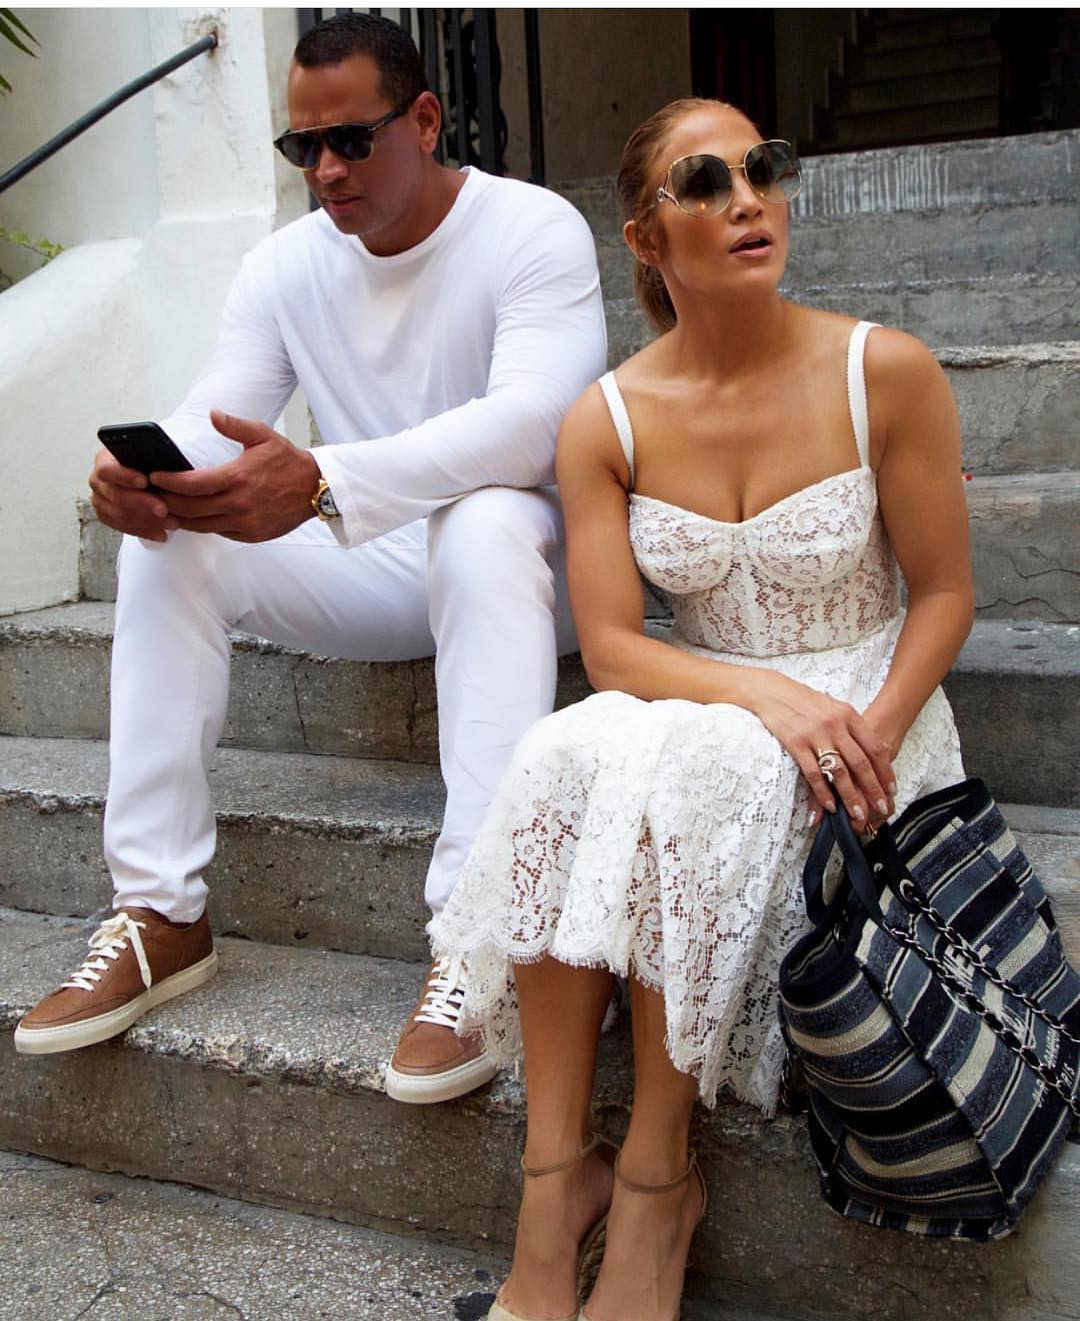 White Lace Midi Dress For Summer Trip In Italy 2019